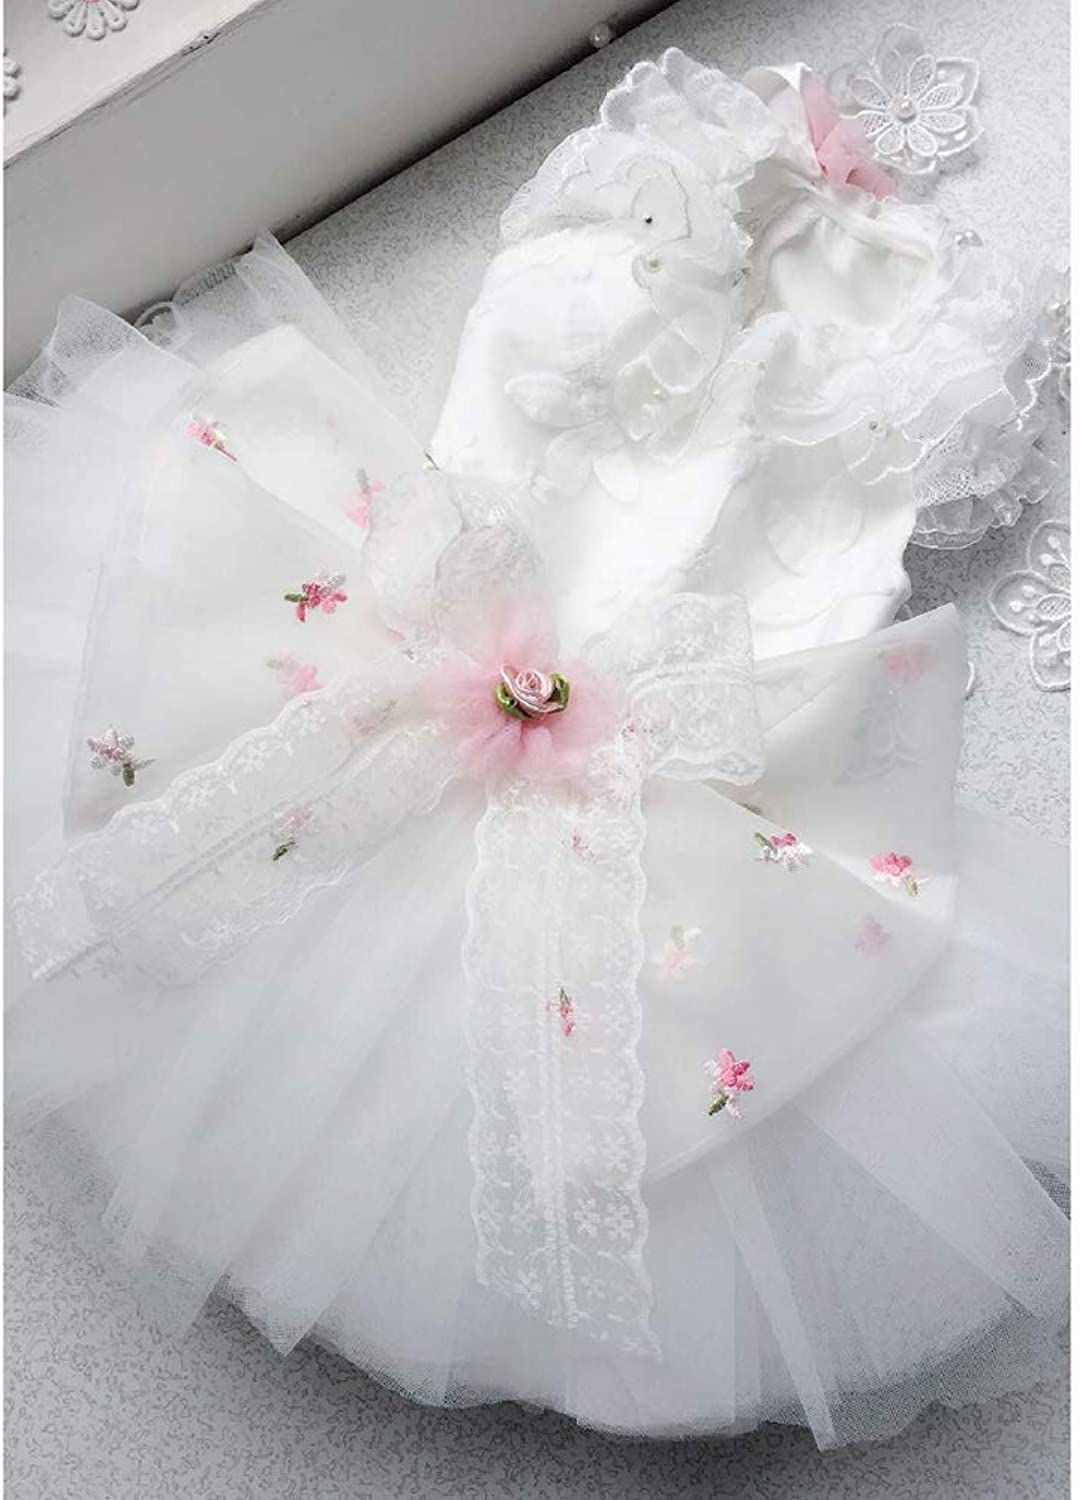 Dog Dresses, Puppy Dog Princess Dresses White Embroidery Design MultiLayered Fluffy Skirt Suitable for Wedding Photography Birthday Party,L